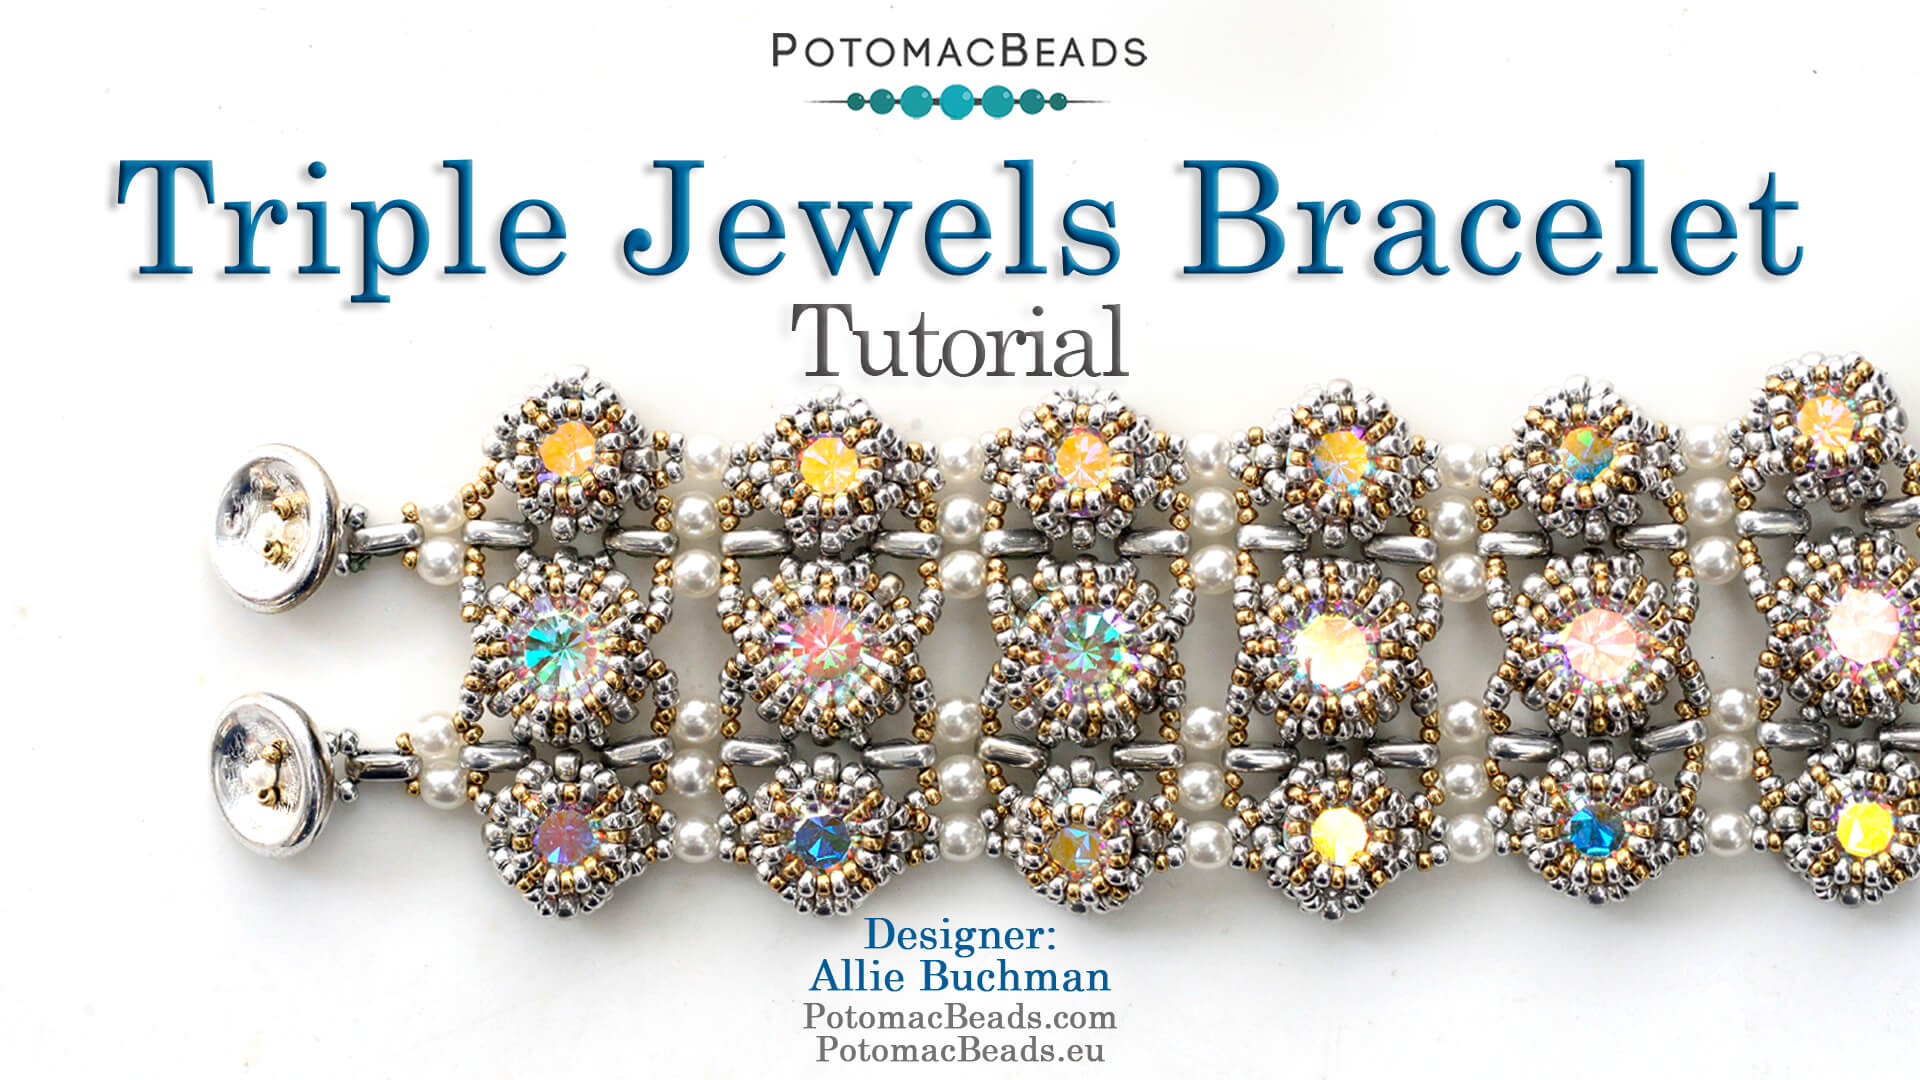 How to Bead Jewelry / Videos Sorted by Beads / Pearl Videos (Czech, Freshwater, Potomac Pearls) / Triple Jewels Bracelet Tutorial